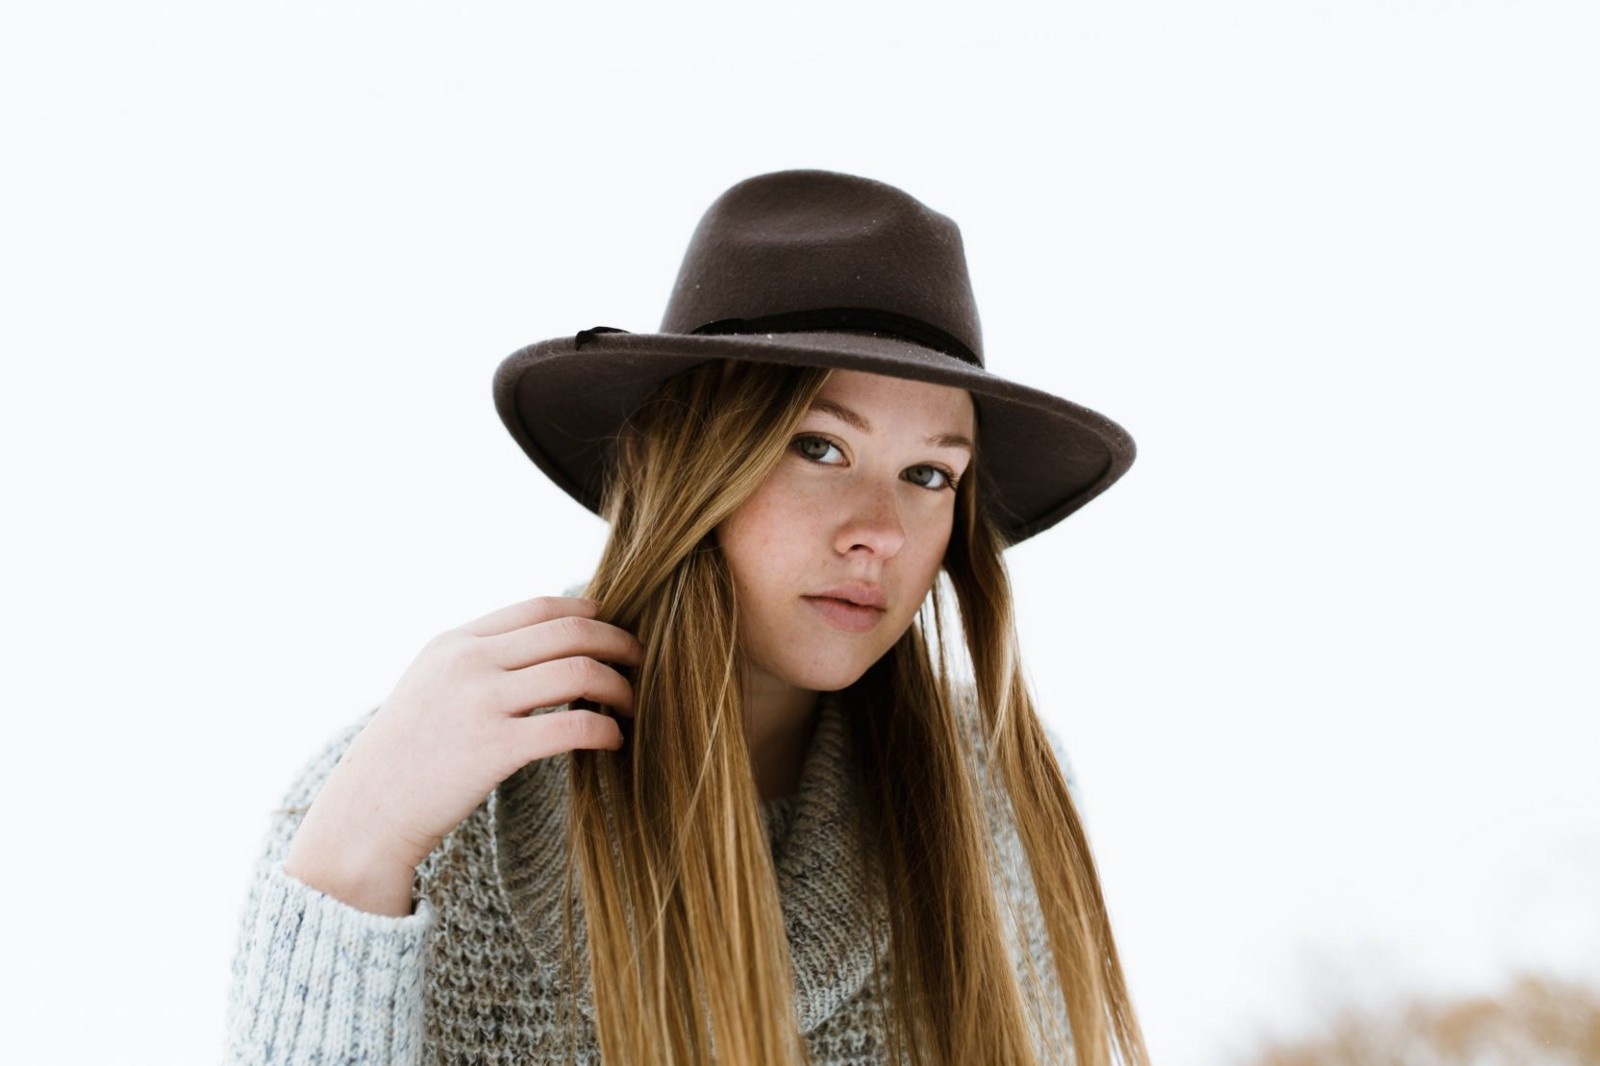 Hat fall for trends recommendations to wear for everyday in 2019